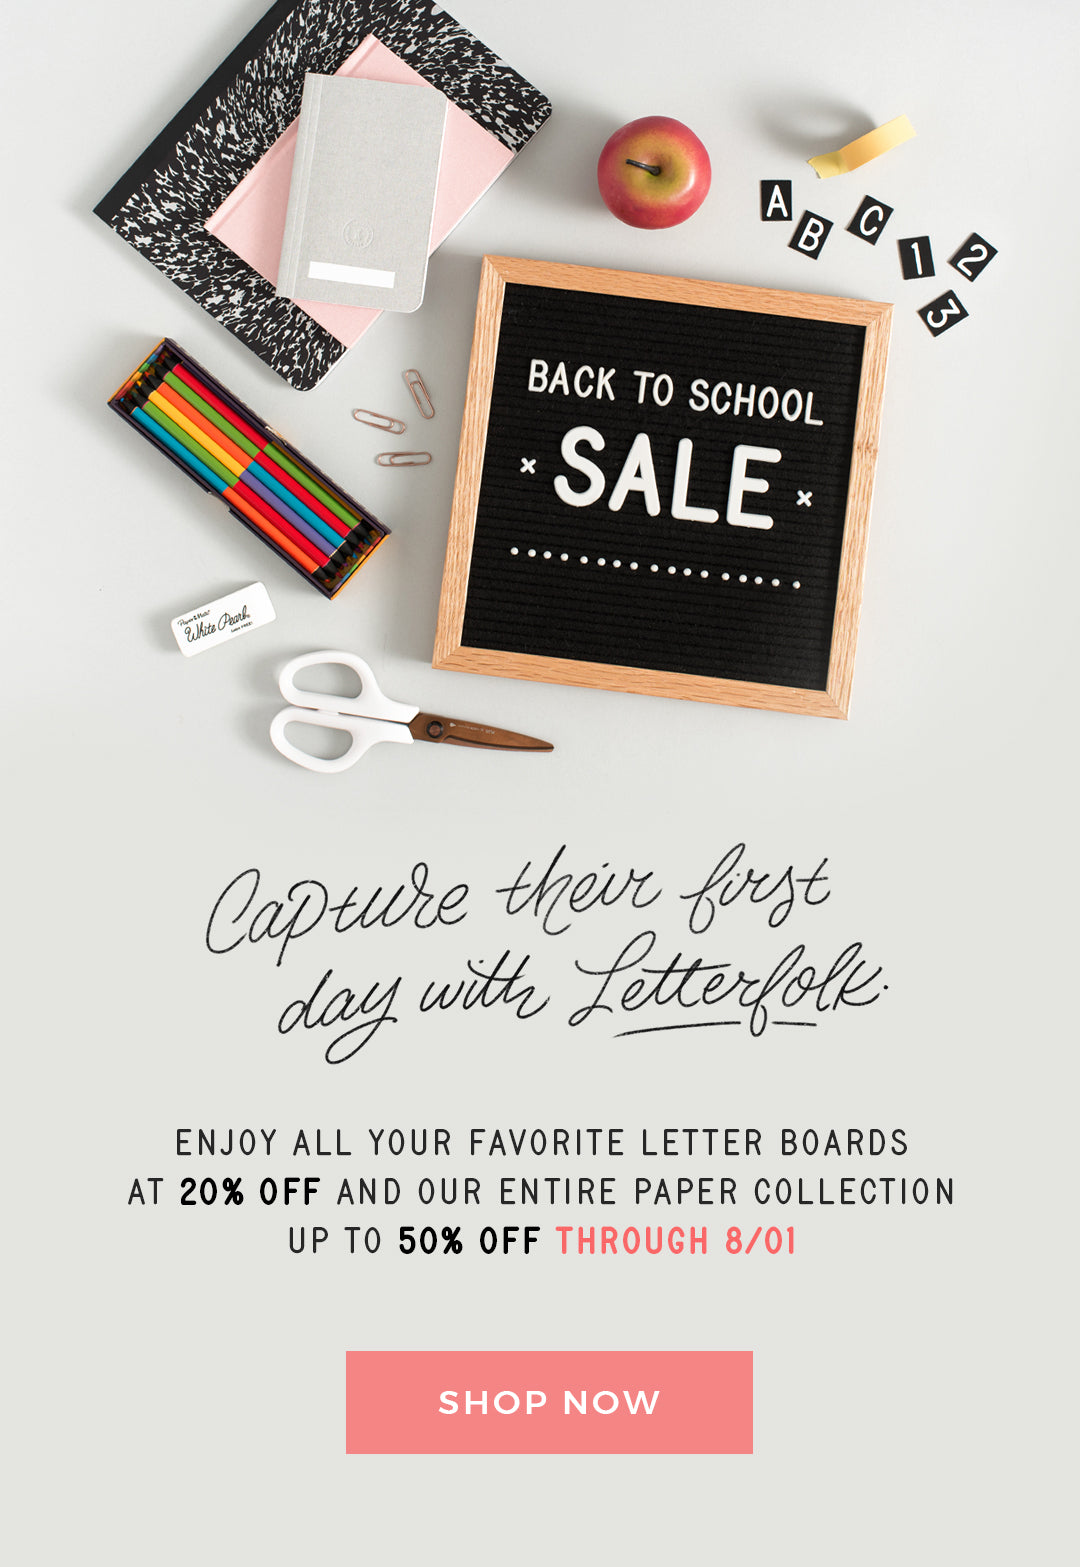 Letterfolk's Back to School Sale